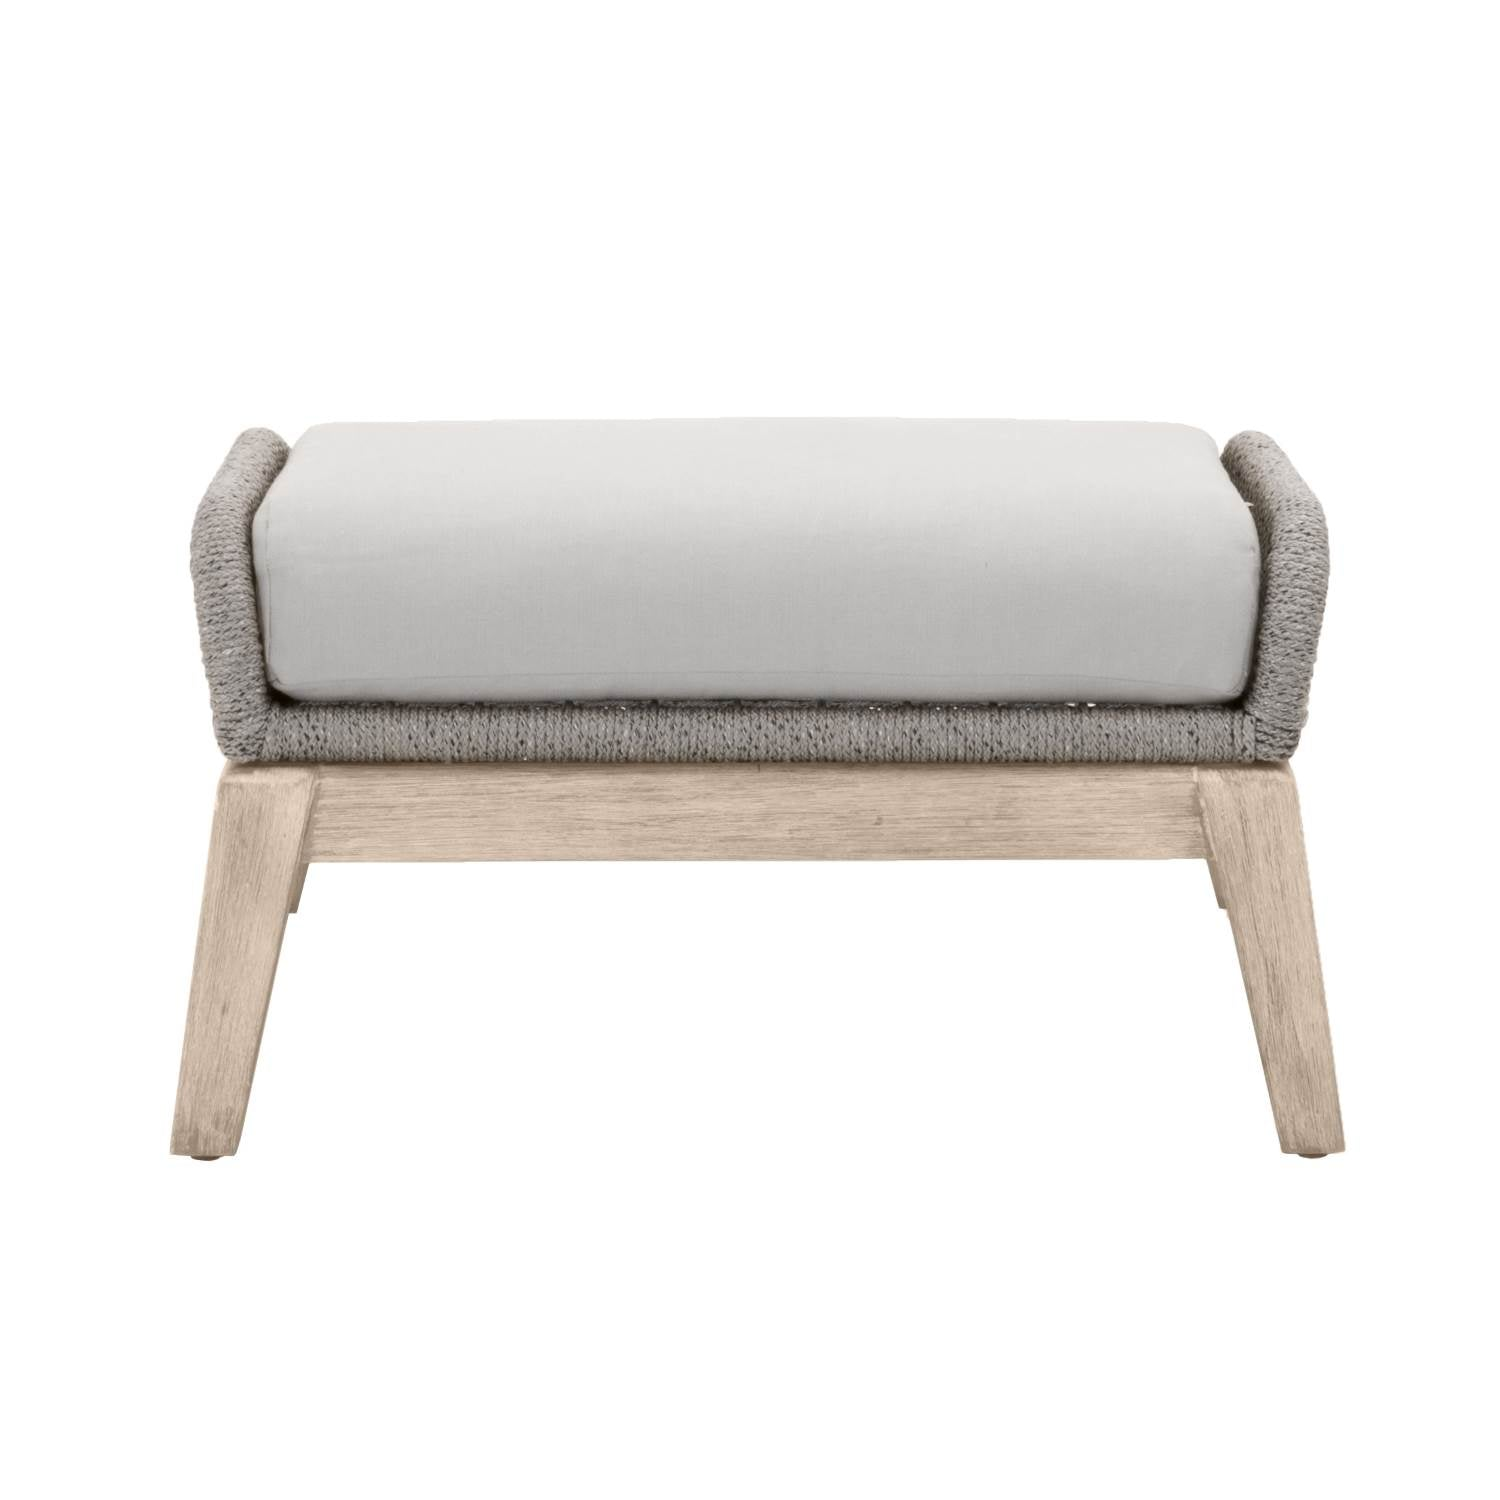 Tulum Outdoor Footstool